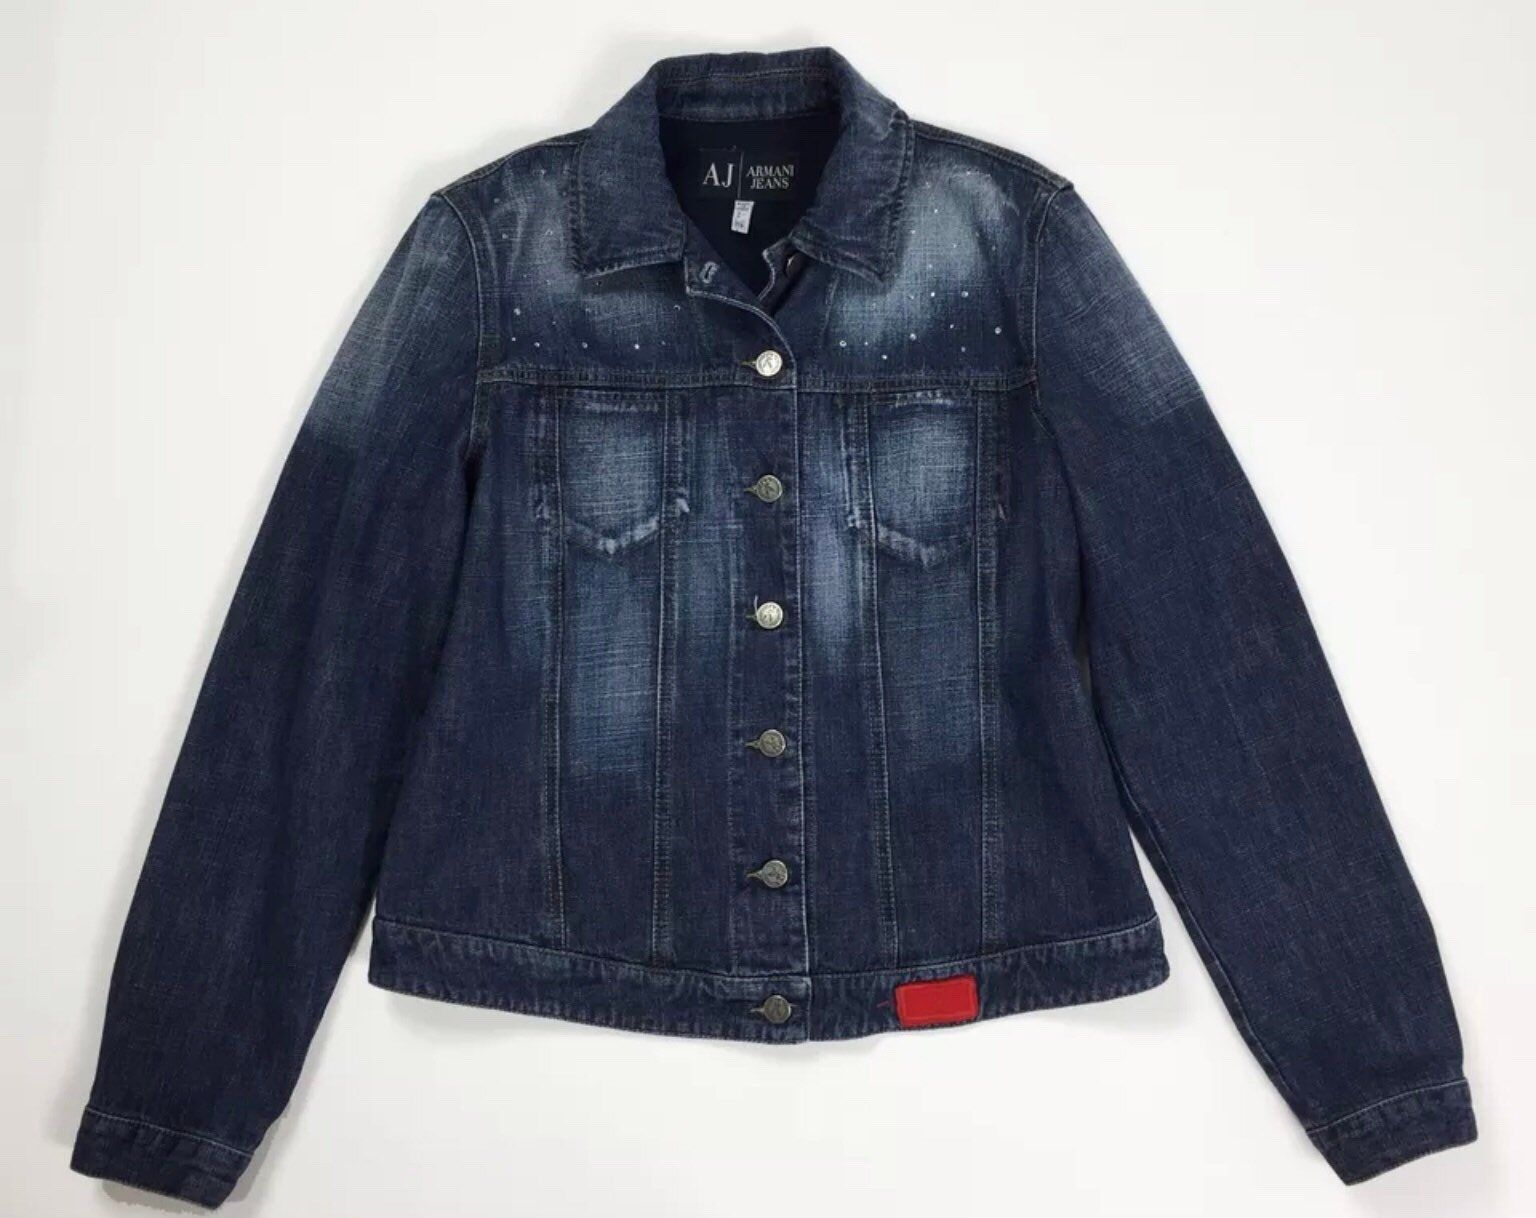 low cost 683d2 7cf63 Armani jeans jacket donna vintage usato denim giacca blu ...